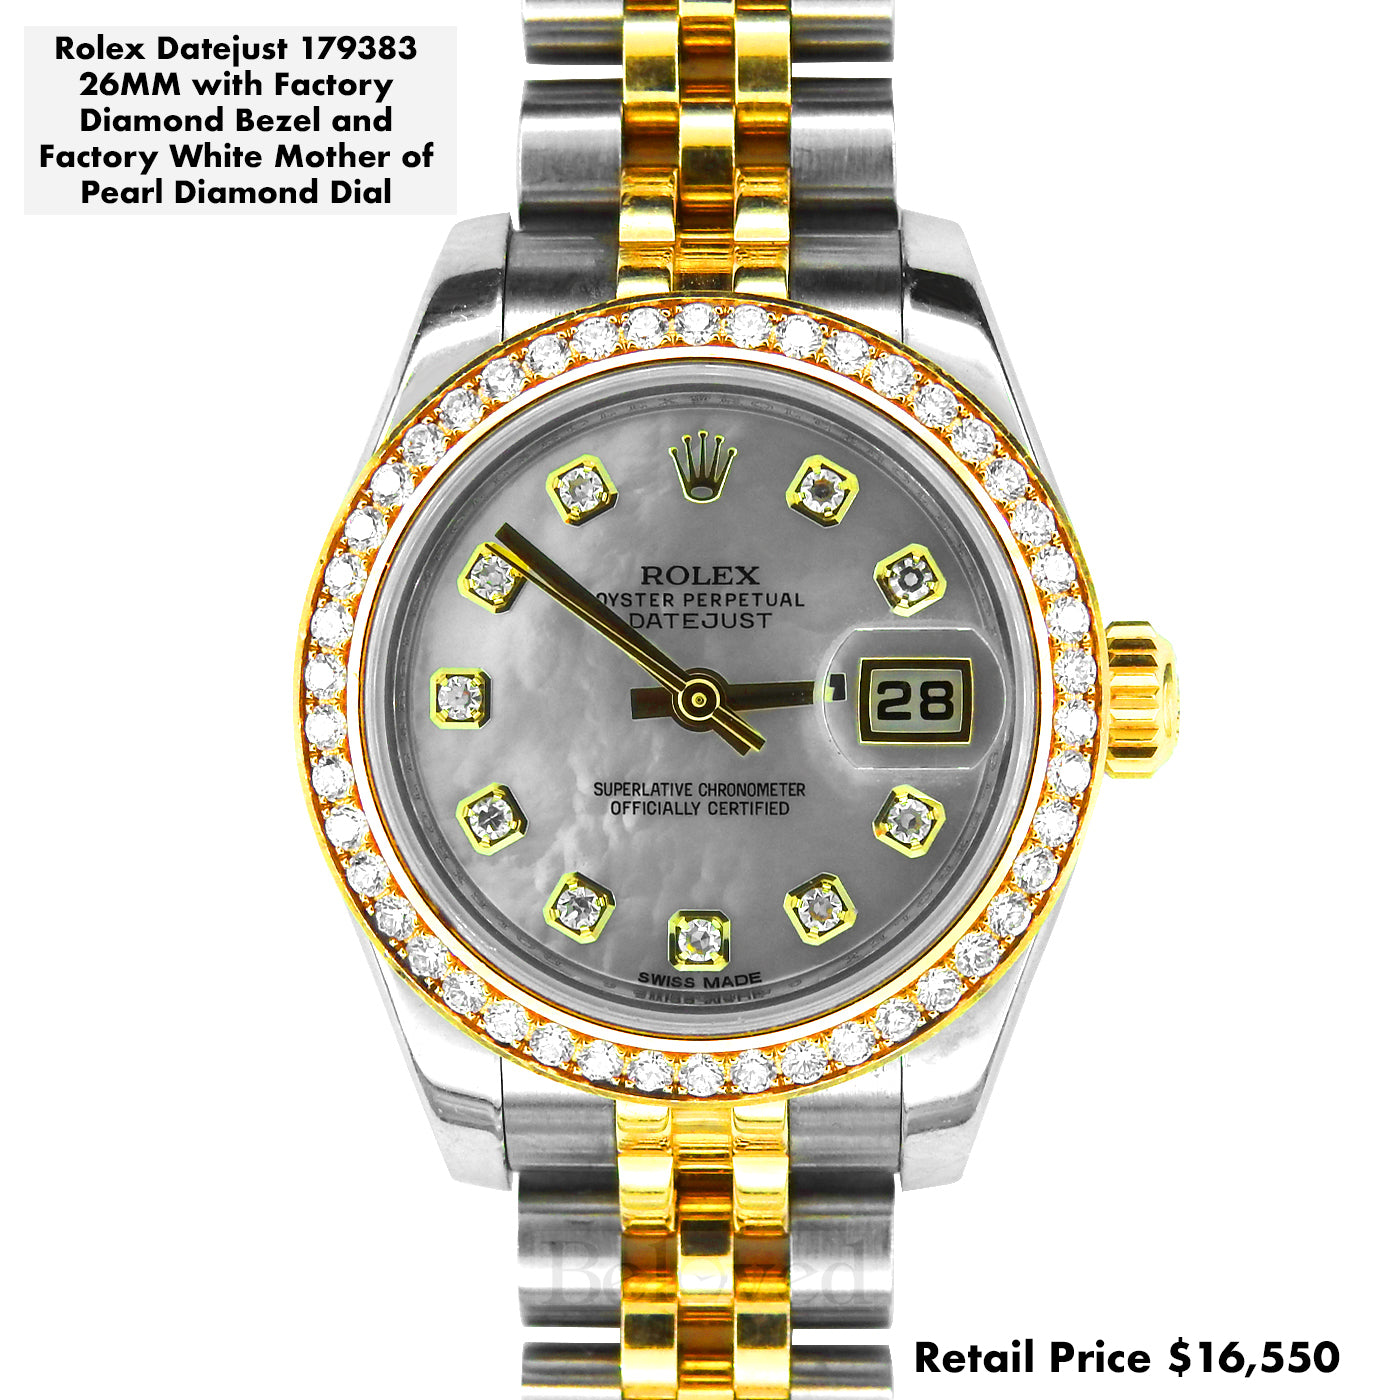 Rolex Lady Datejust 26 179383 White Mother of Pearl Factory Diamond Dial Diamond Bezel Yellow Gold Stainless Steel Jubilee